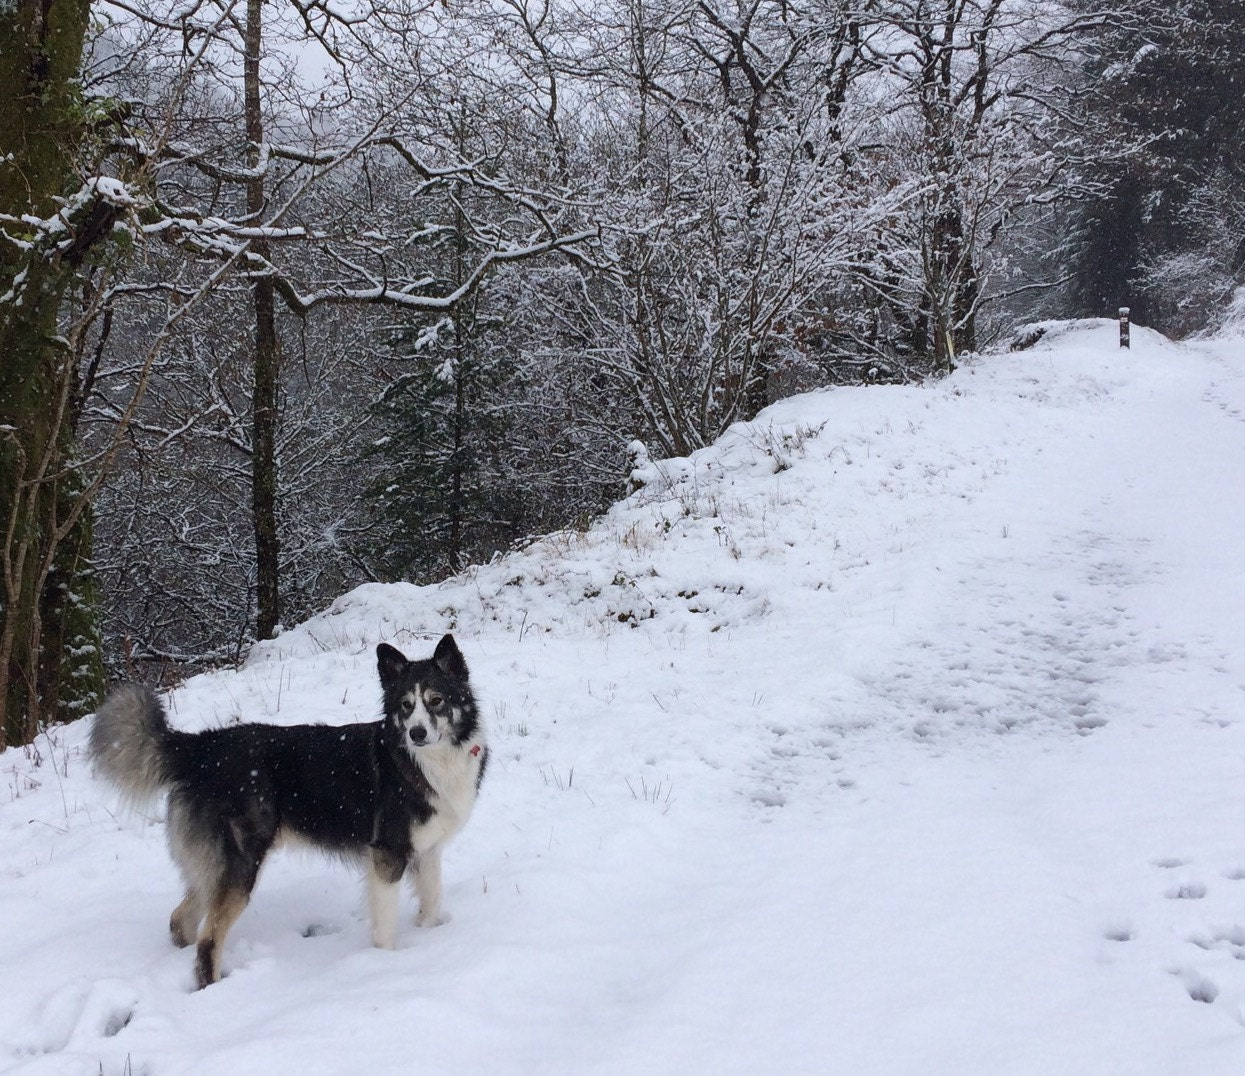 Shap - Alaskan malamute x collie - in the snow